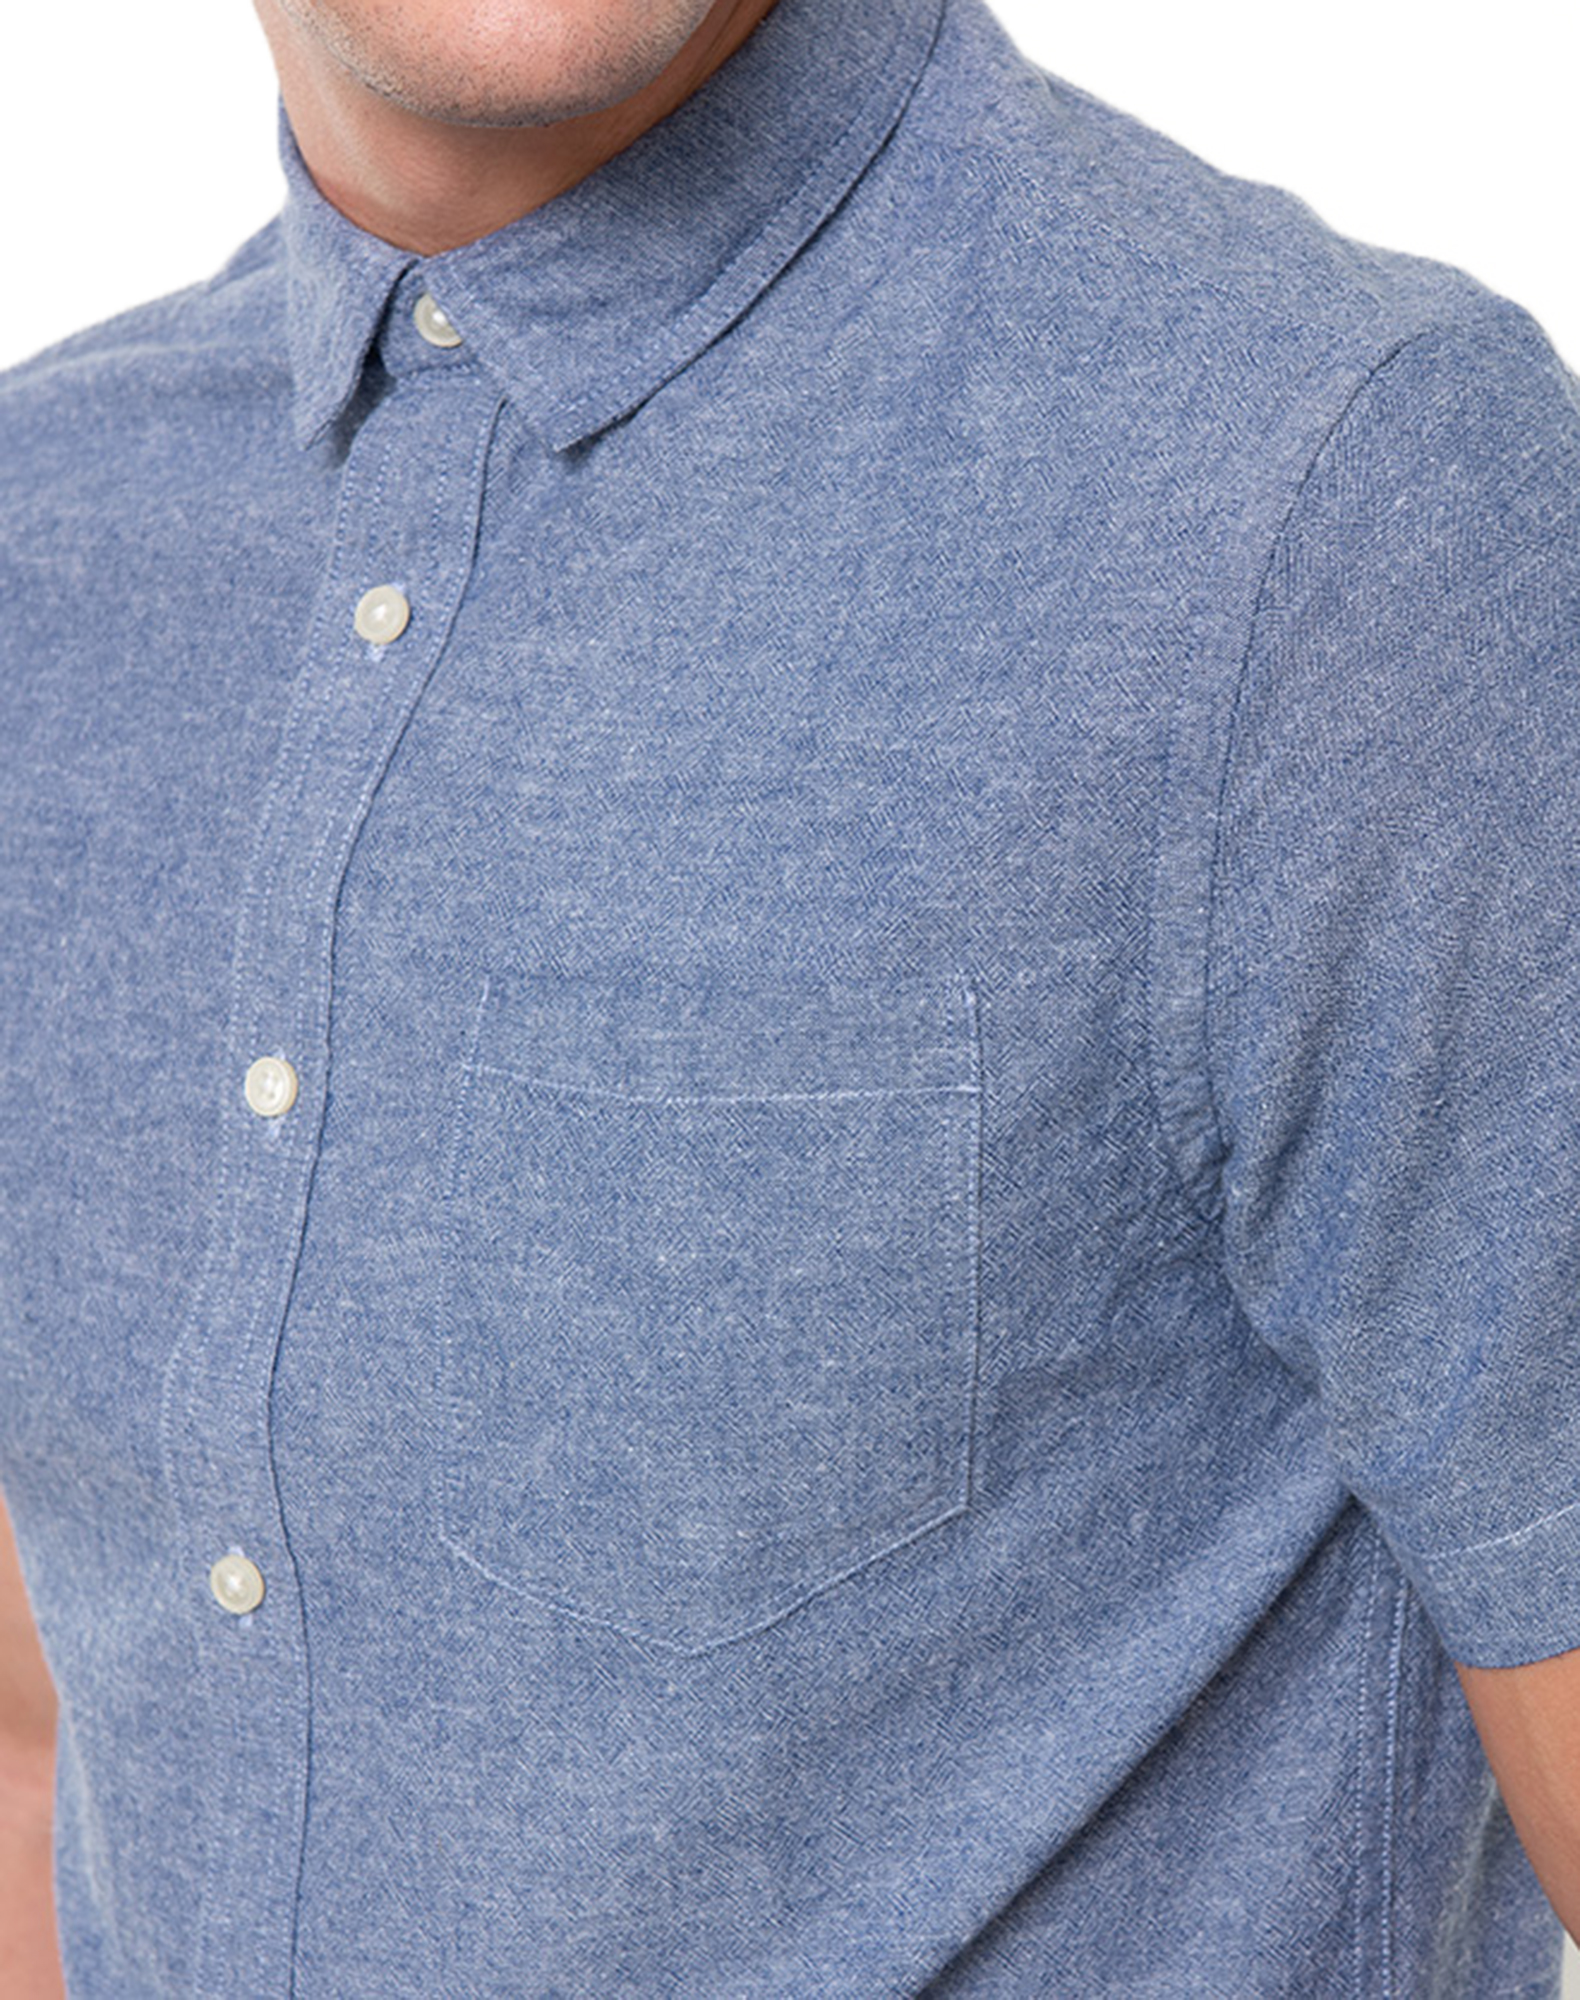 ONLY /& SONS Short Sleeve Tinso Shirt Mens Slim Fit Casual Smart Shirts Blue